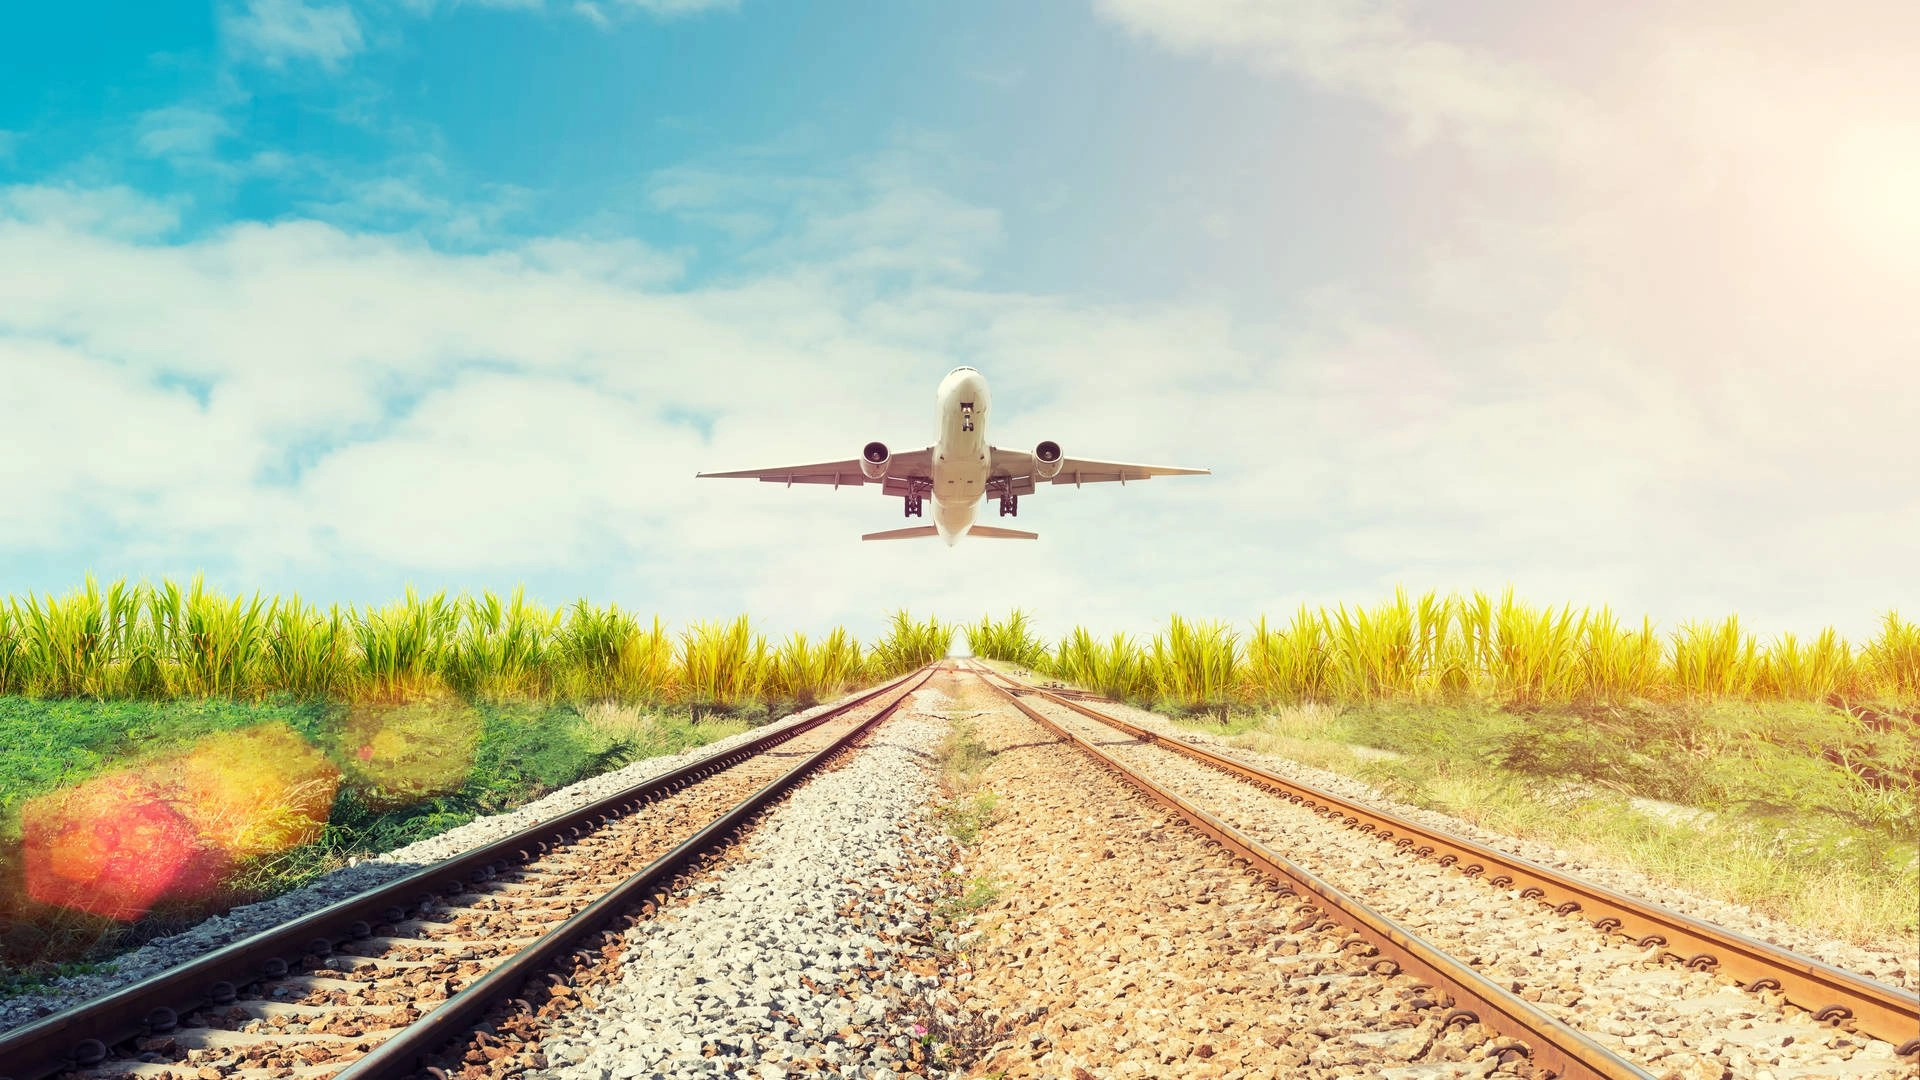 The environmental impact of taking a train vs. flying